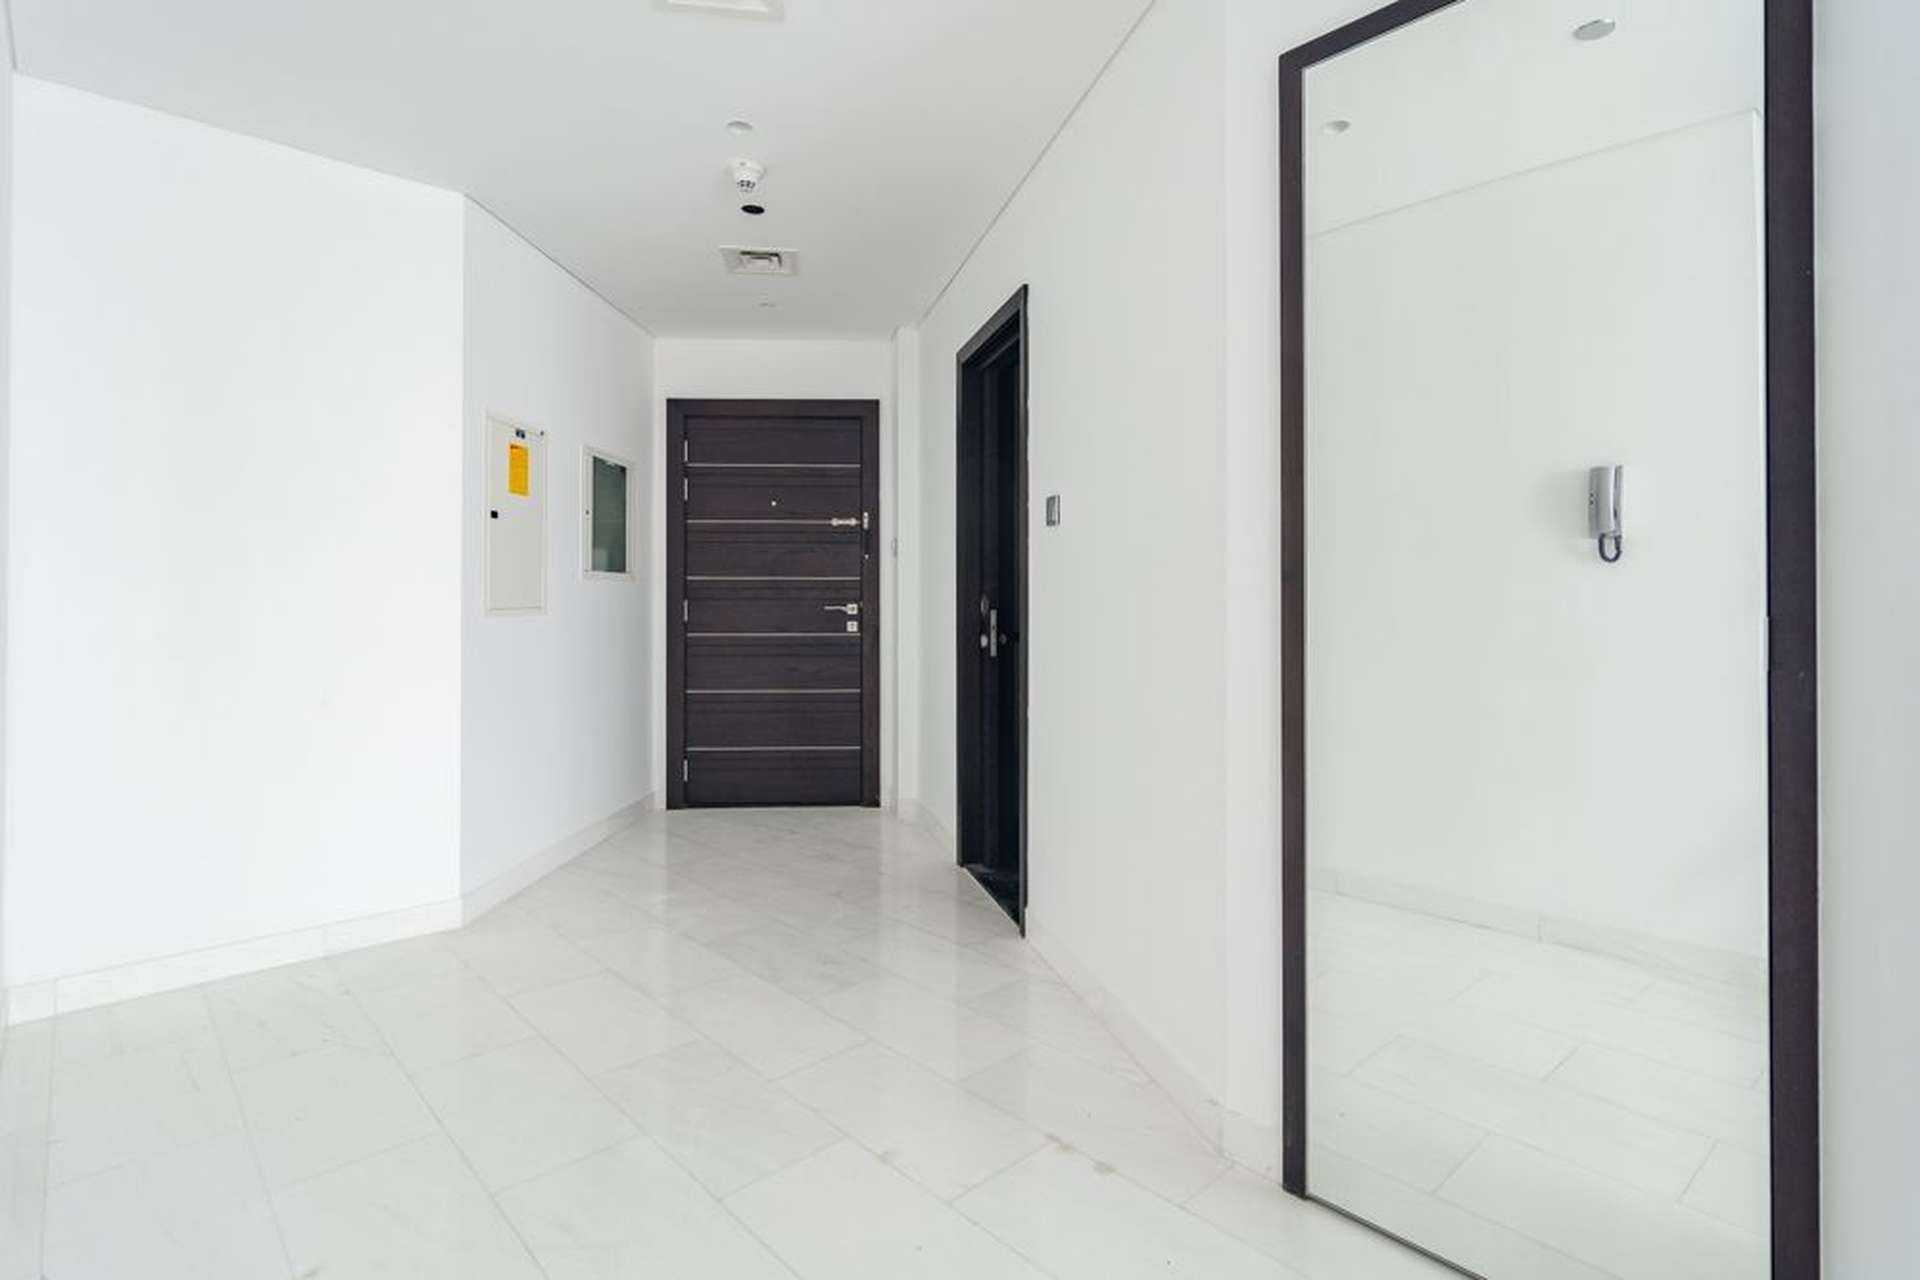 Sea View 2 Bed Apartment For Rent In Cayan Tower Dubai Marina Luxuryproperty Com,Playroom Storage Kids Toy Storage Ideas